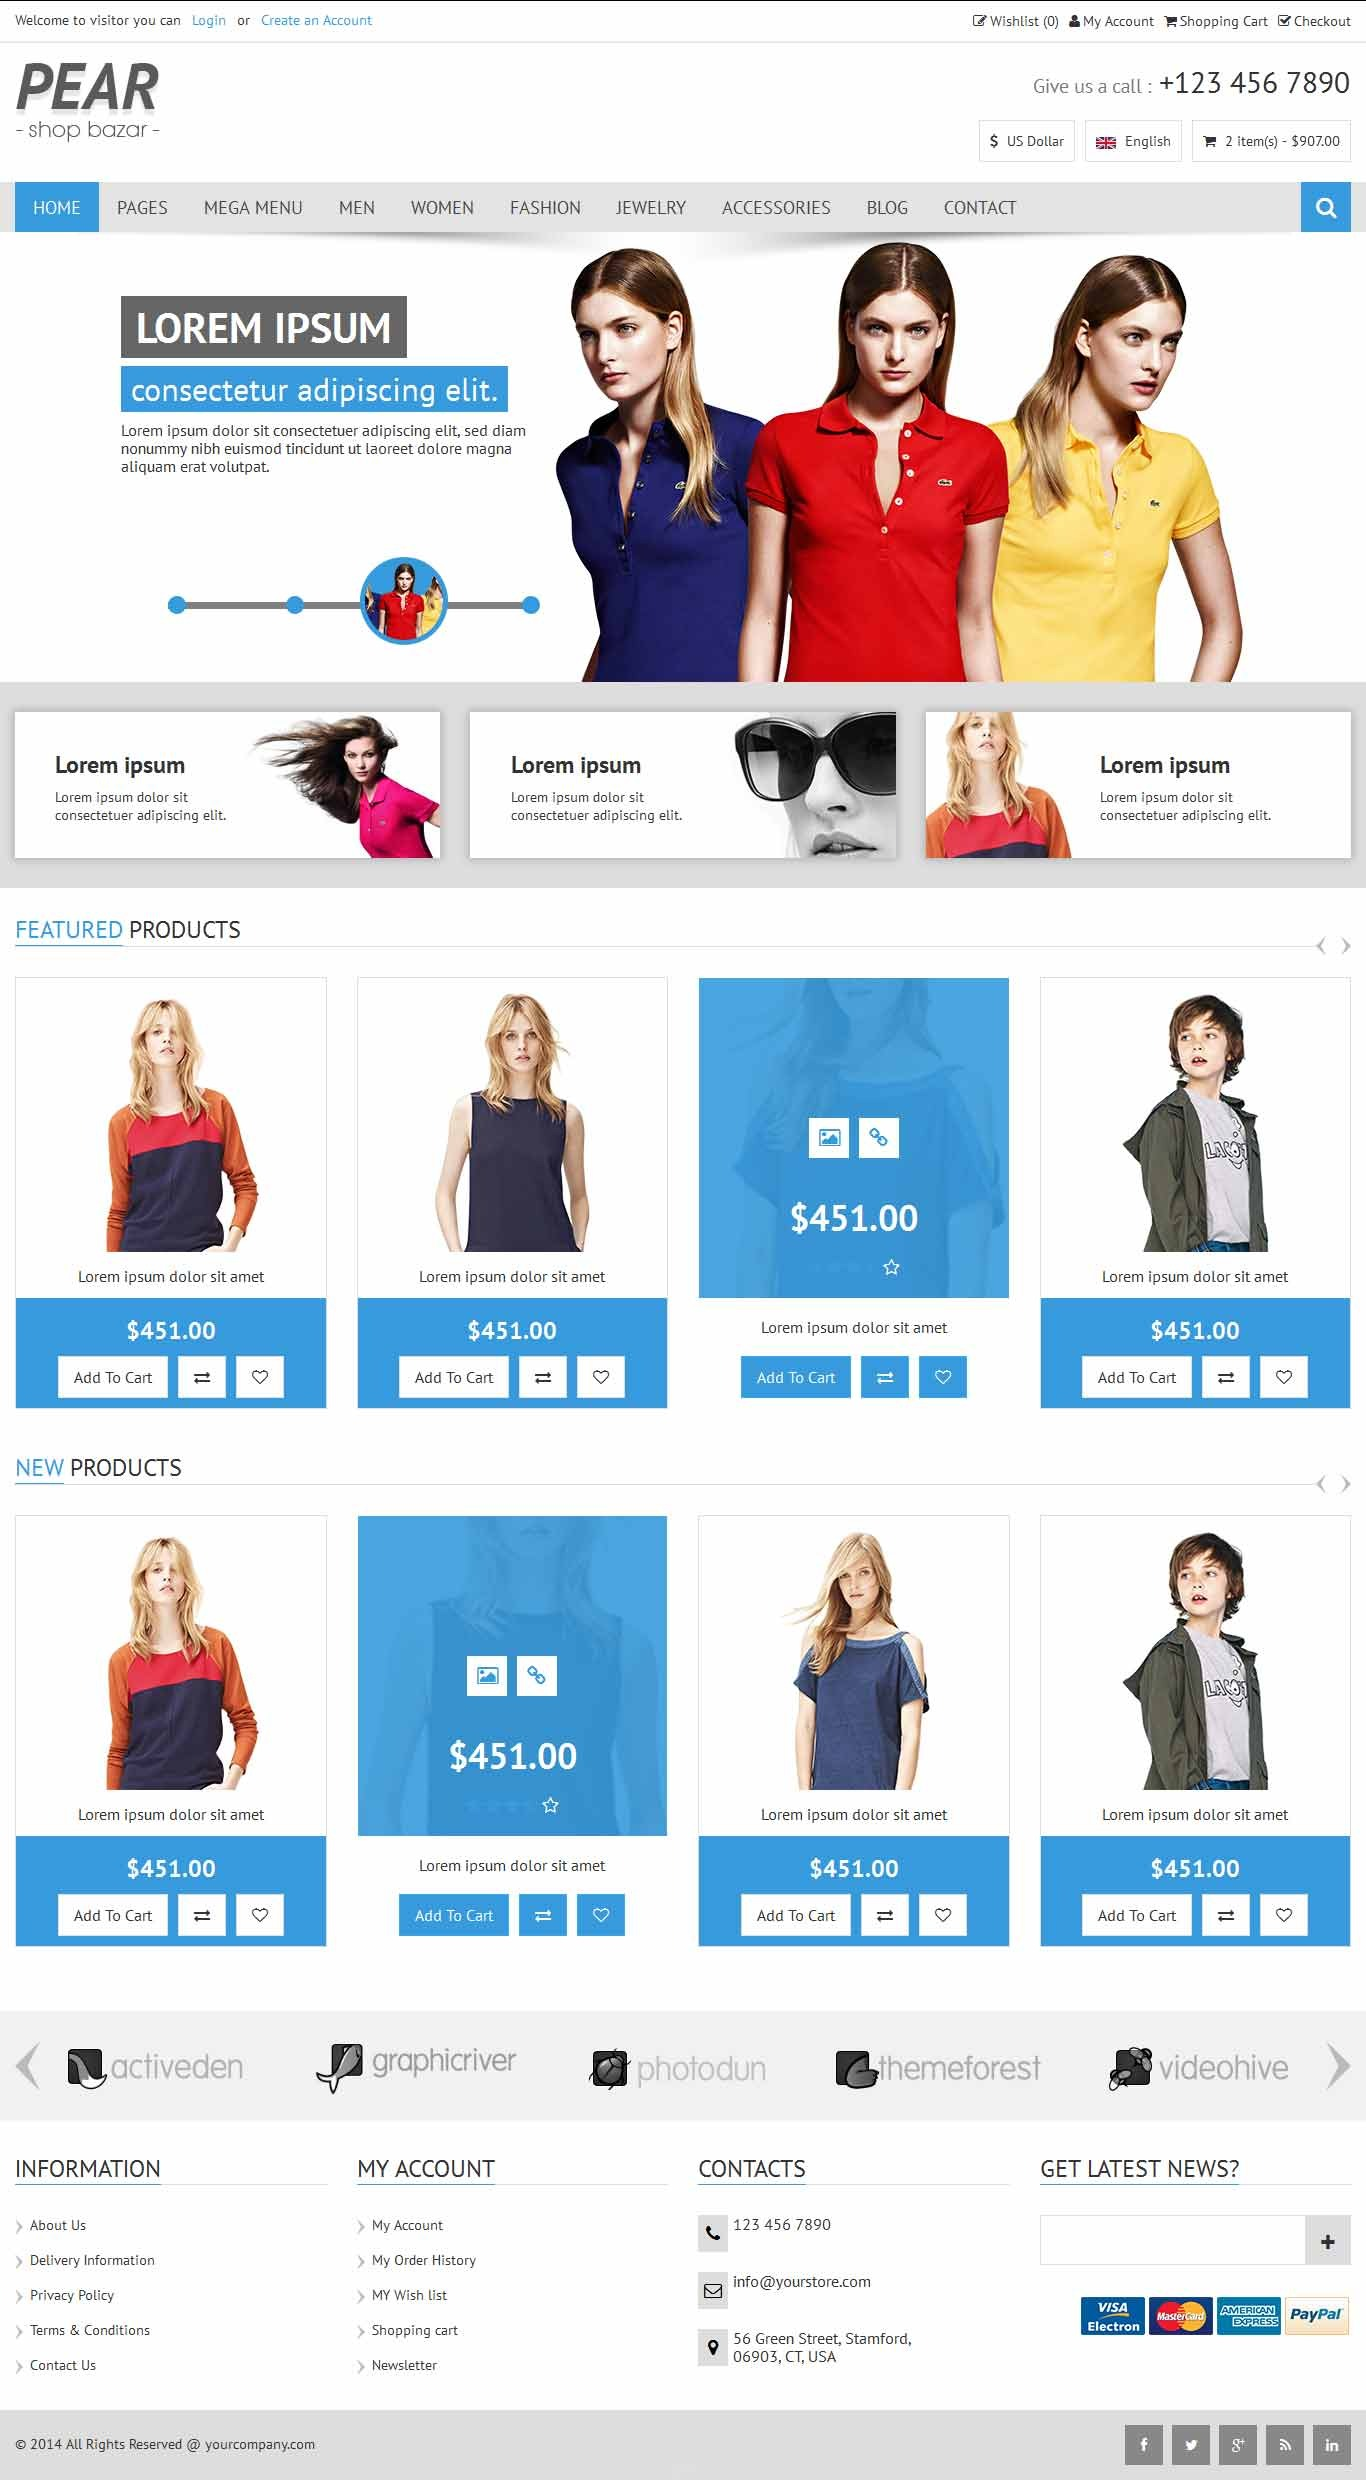 Pear - Responsive E-Commerce HTML Template V1.2